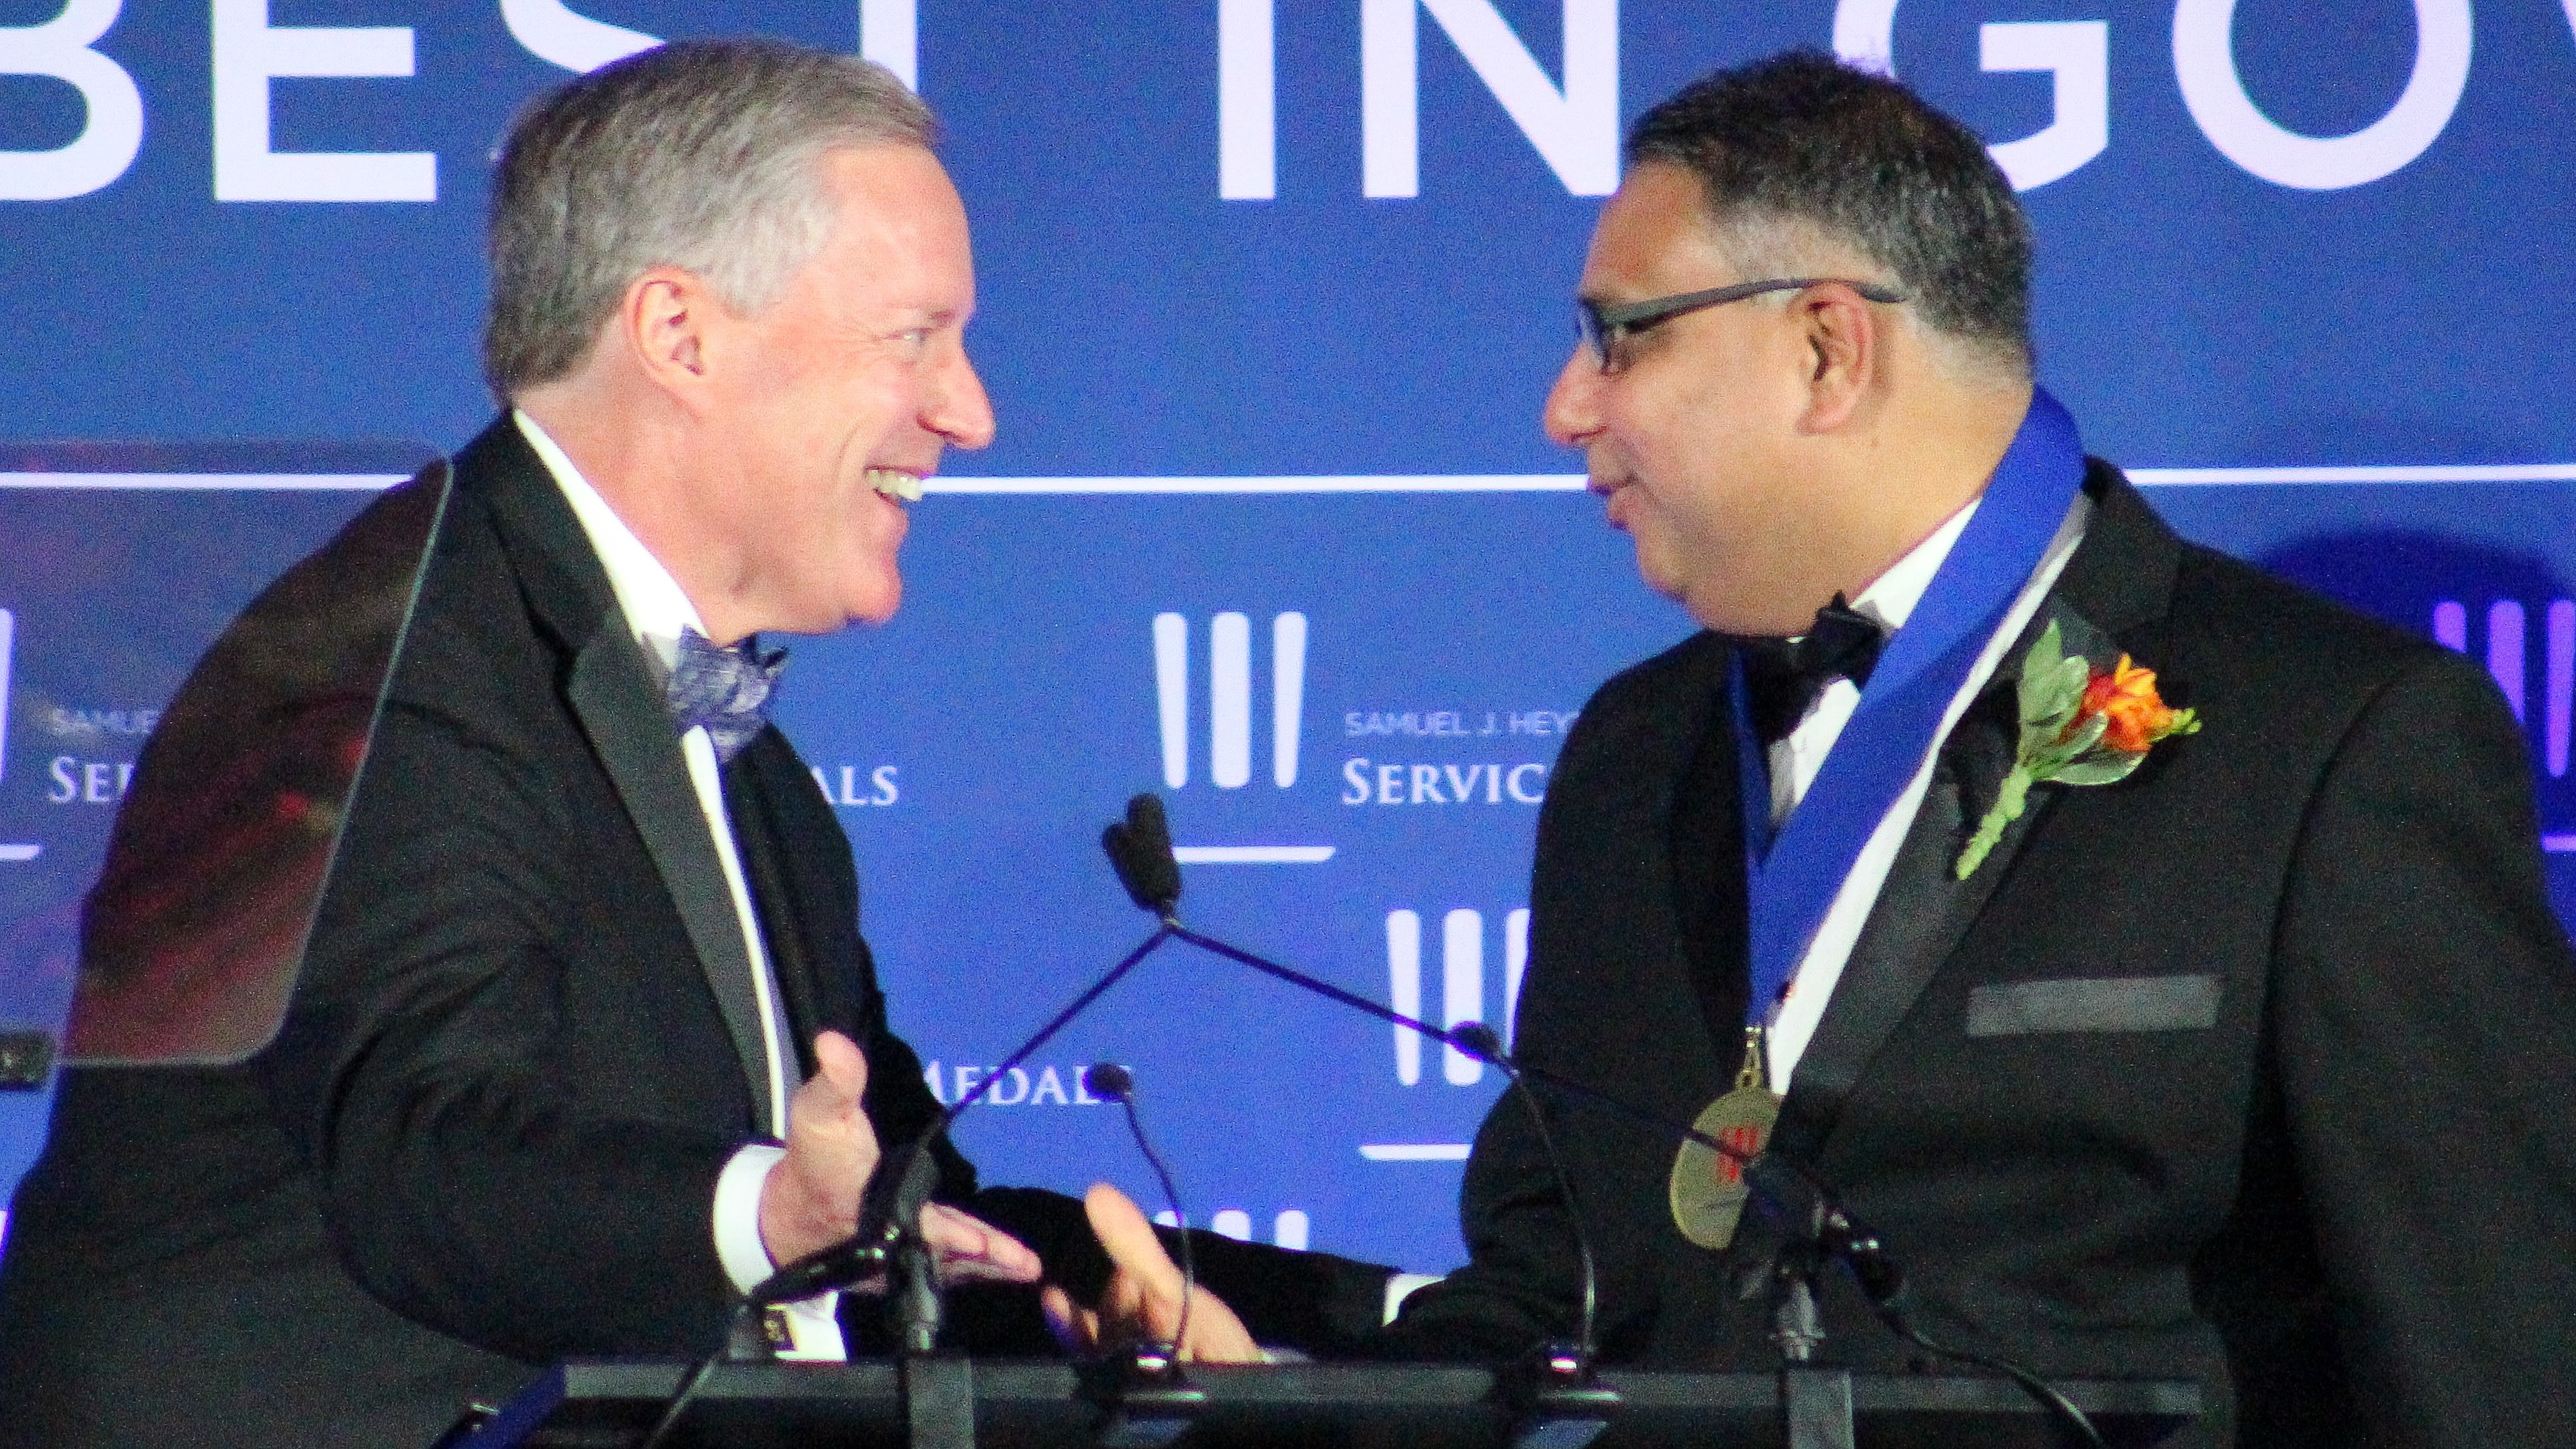 Rep. Mark Meadows, R-N.C., presents Parimal Kopardekar, senior technologist for Air Transportation Systems at NASA's Ames Research Center, with the Promising Innovations Medal at the 2018 Sammies Gala. (Jessie Bur/Staff)